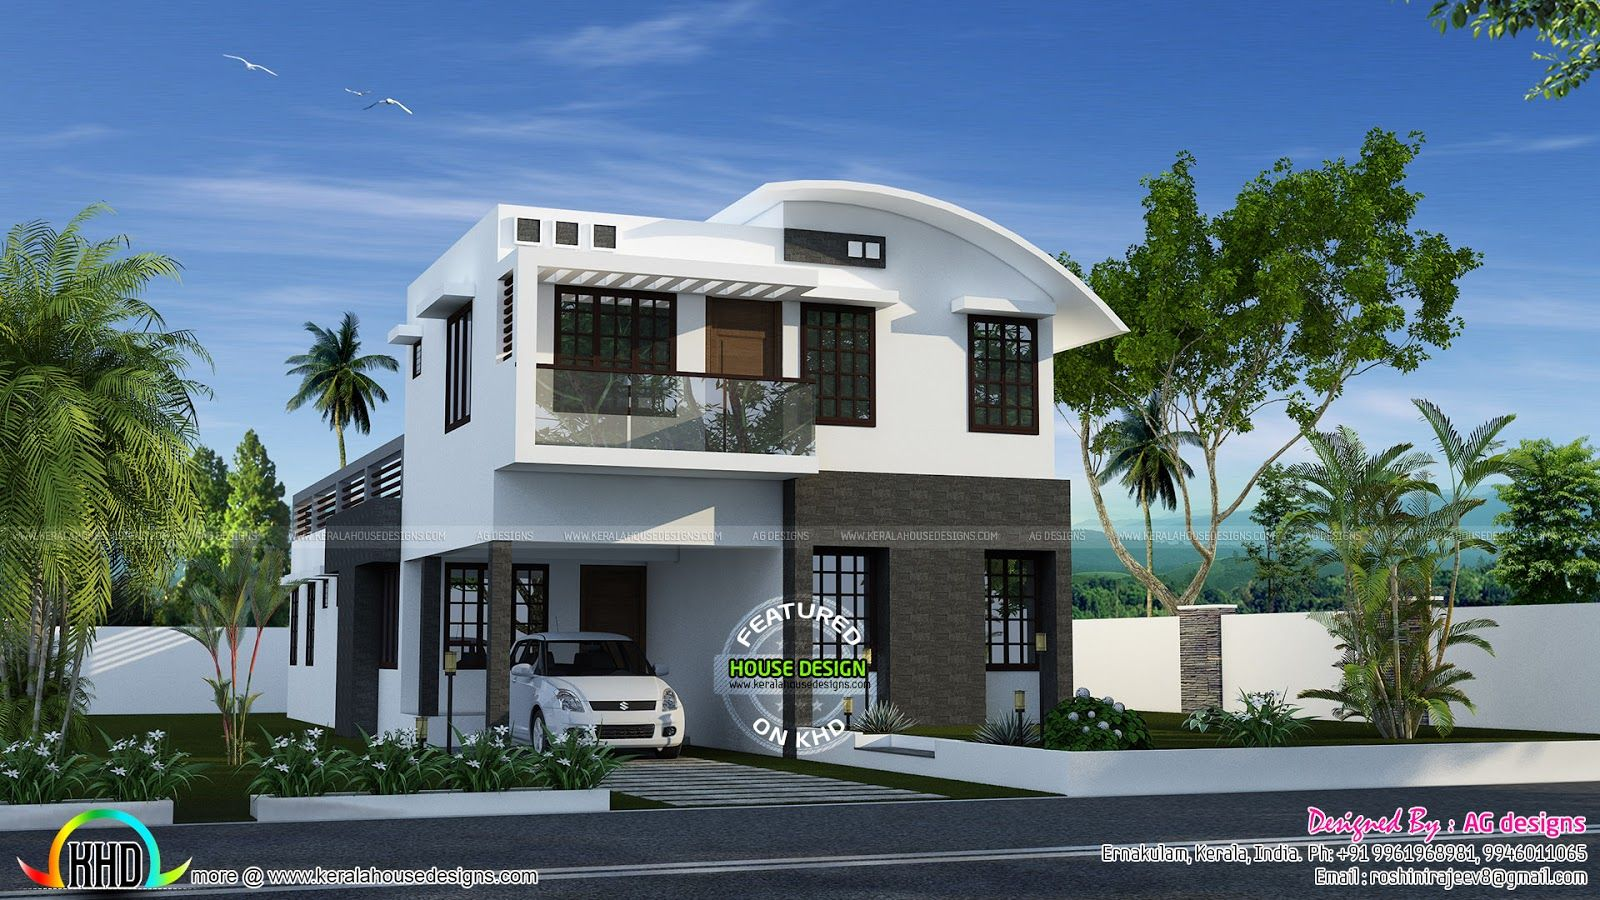 Home design compact slate 30x40 house front elevation for House elevation